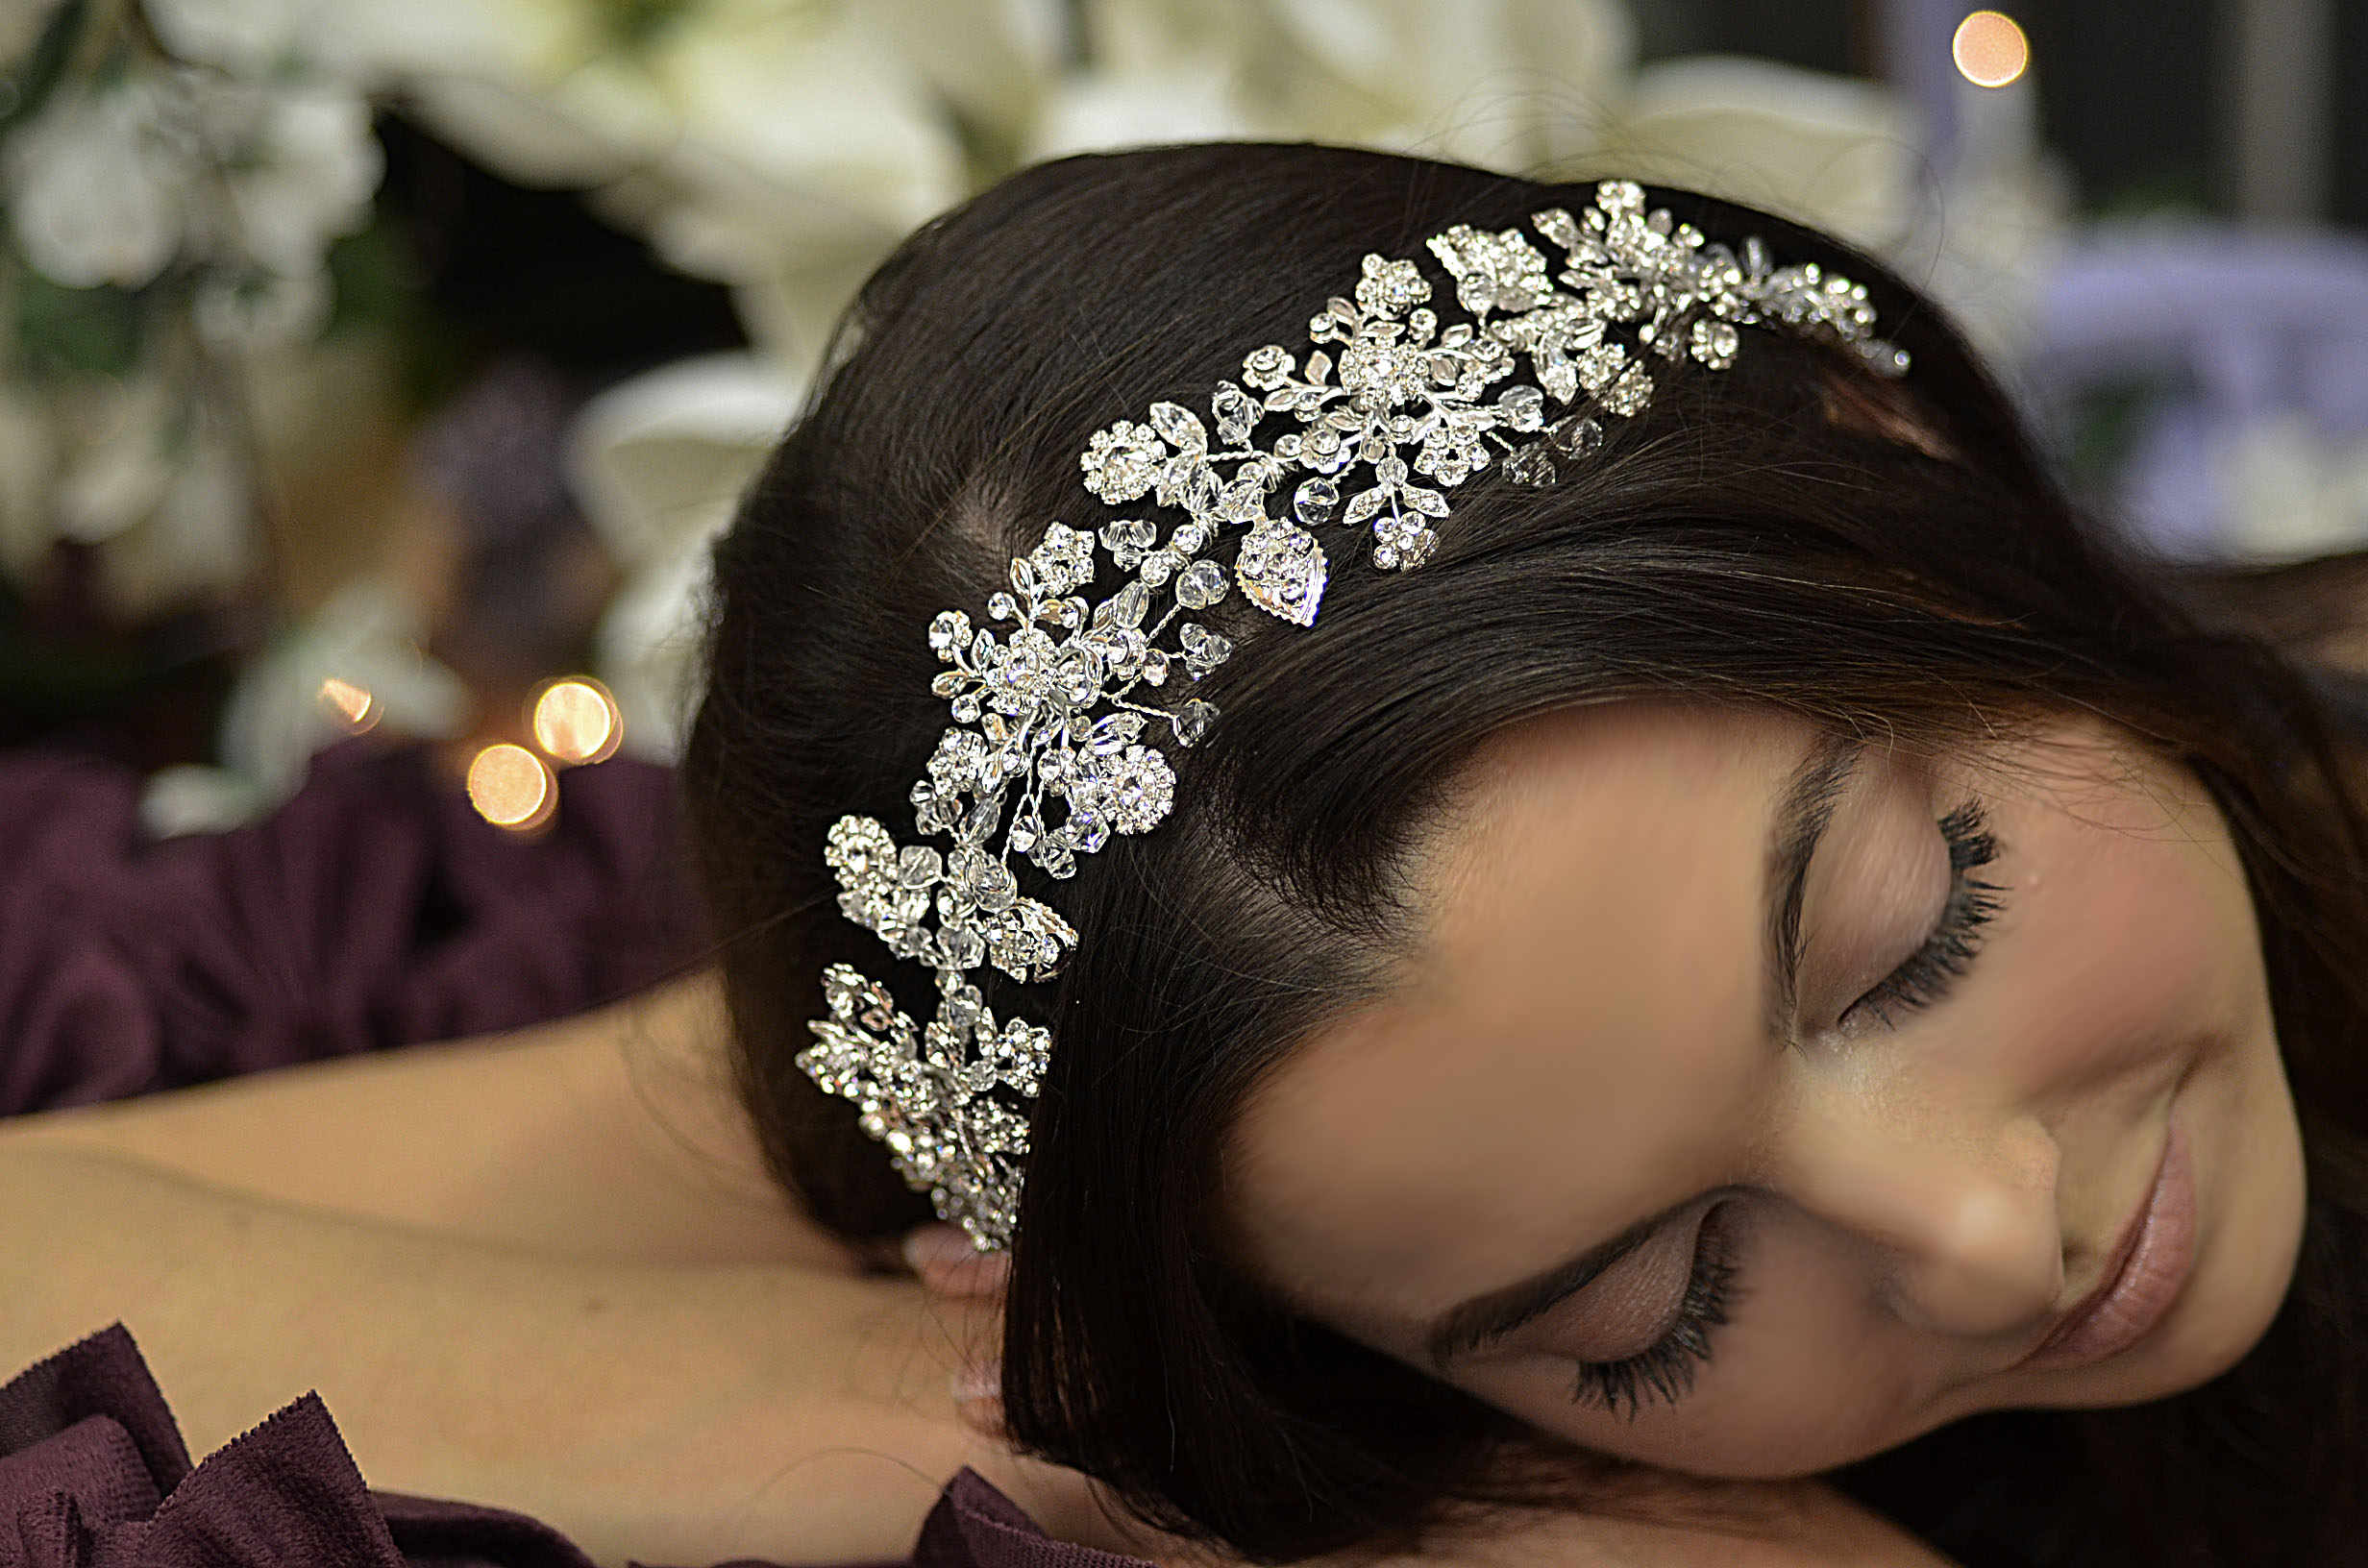 E807 Floral Crystal Motif Headpiece (Flexible)